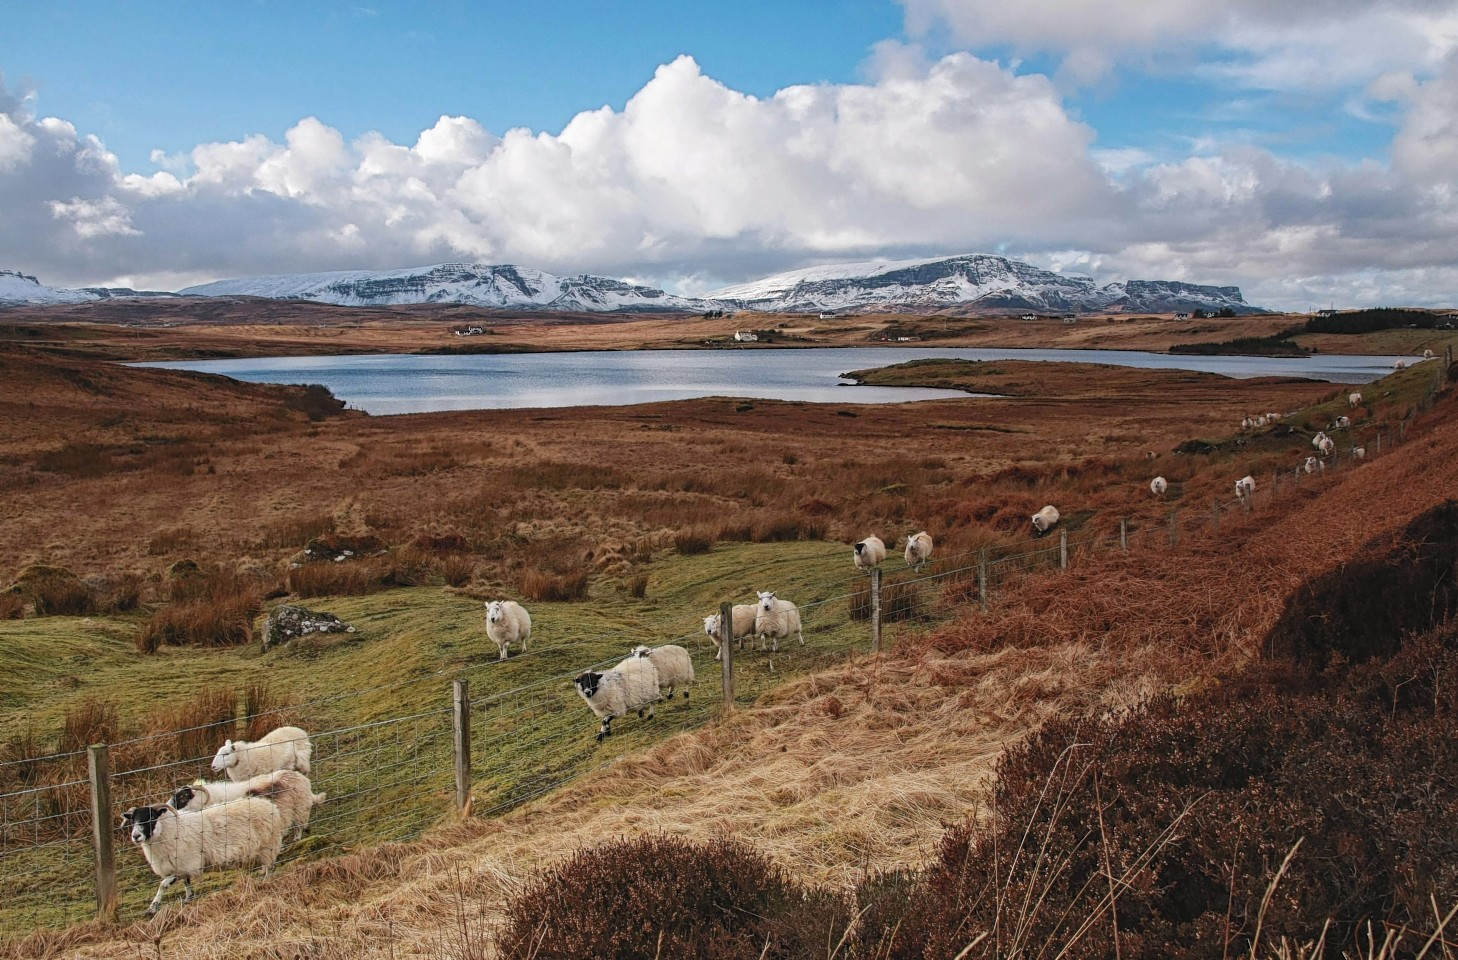 Scenic landscape of Staffin, on the Isle of Skye